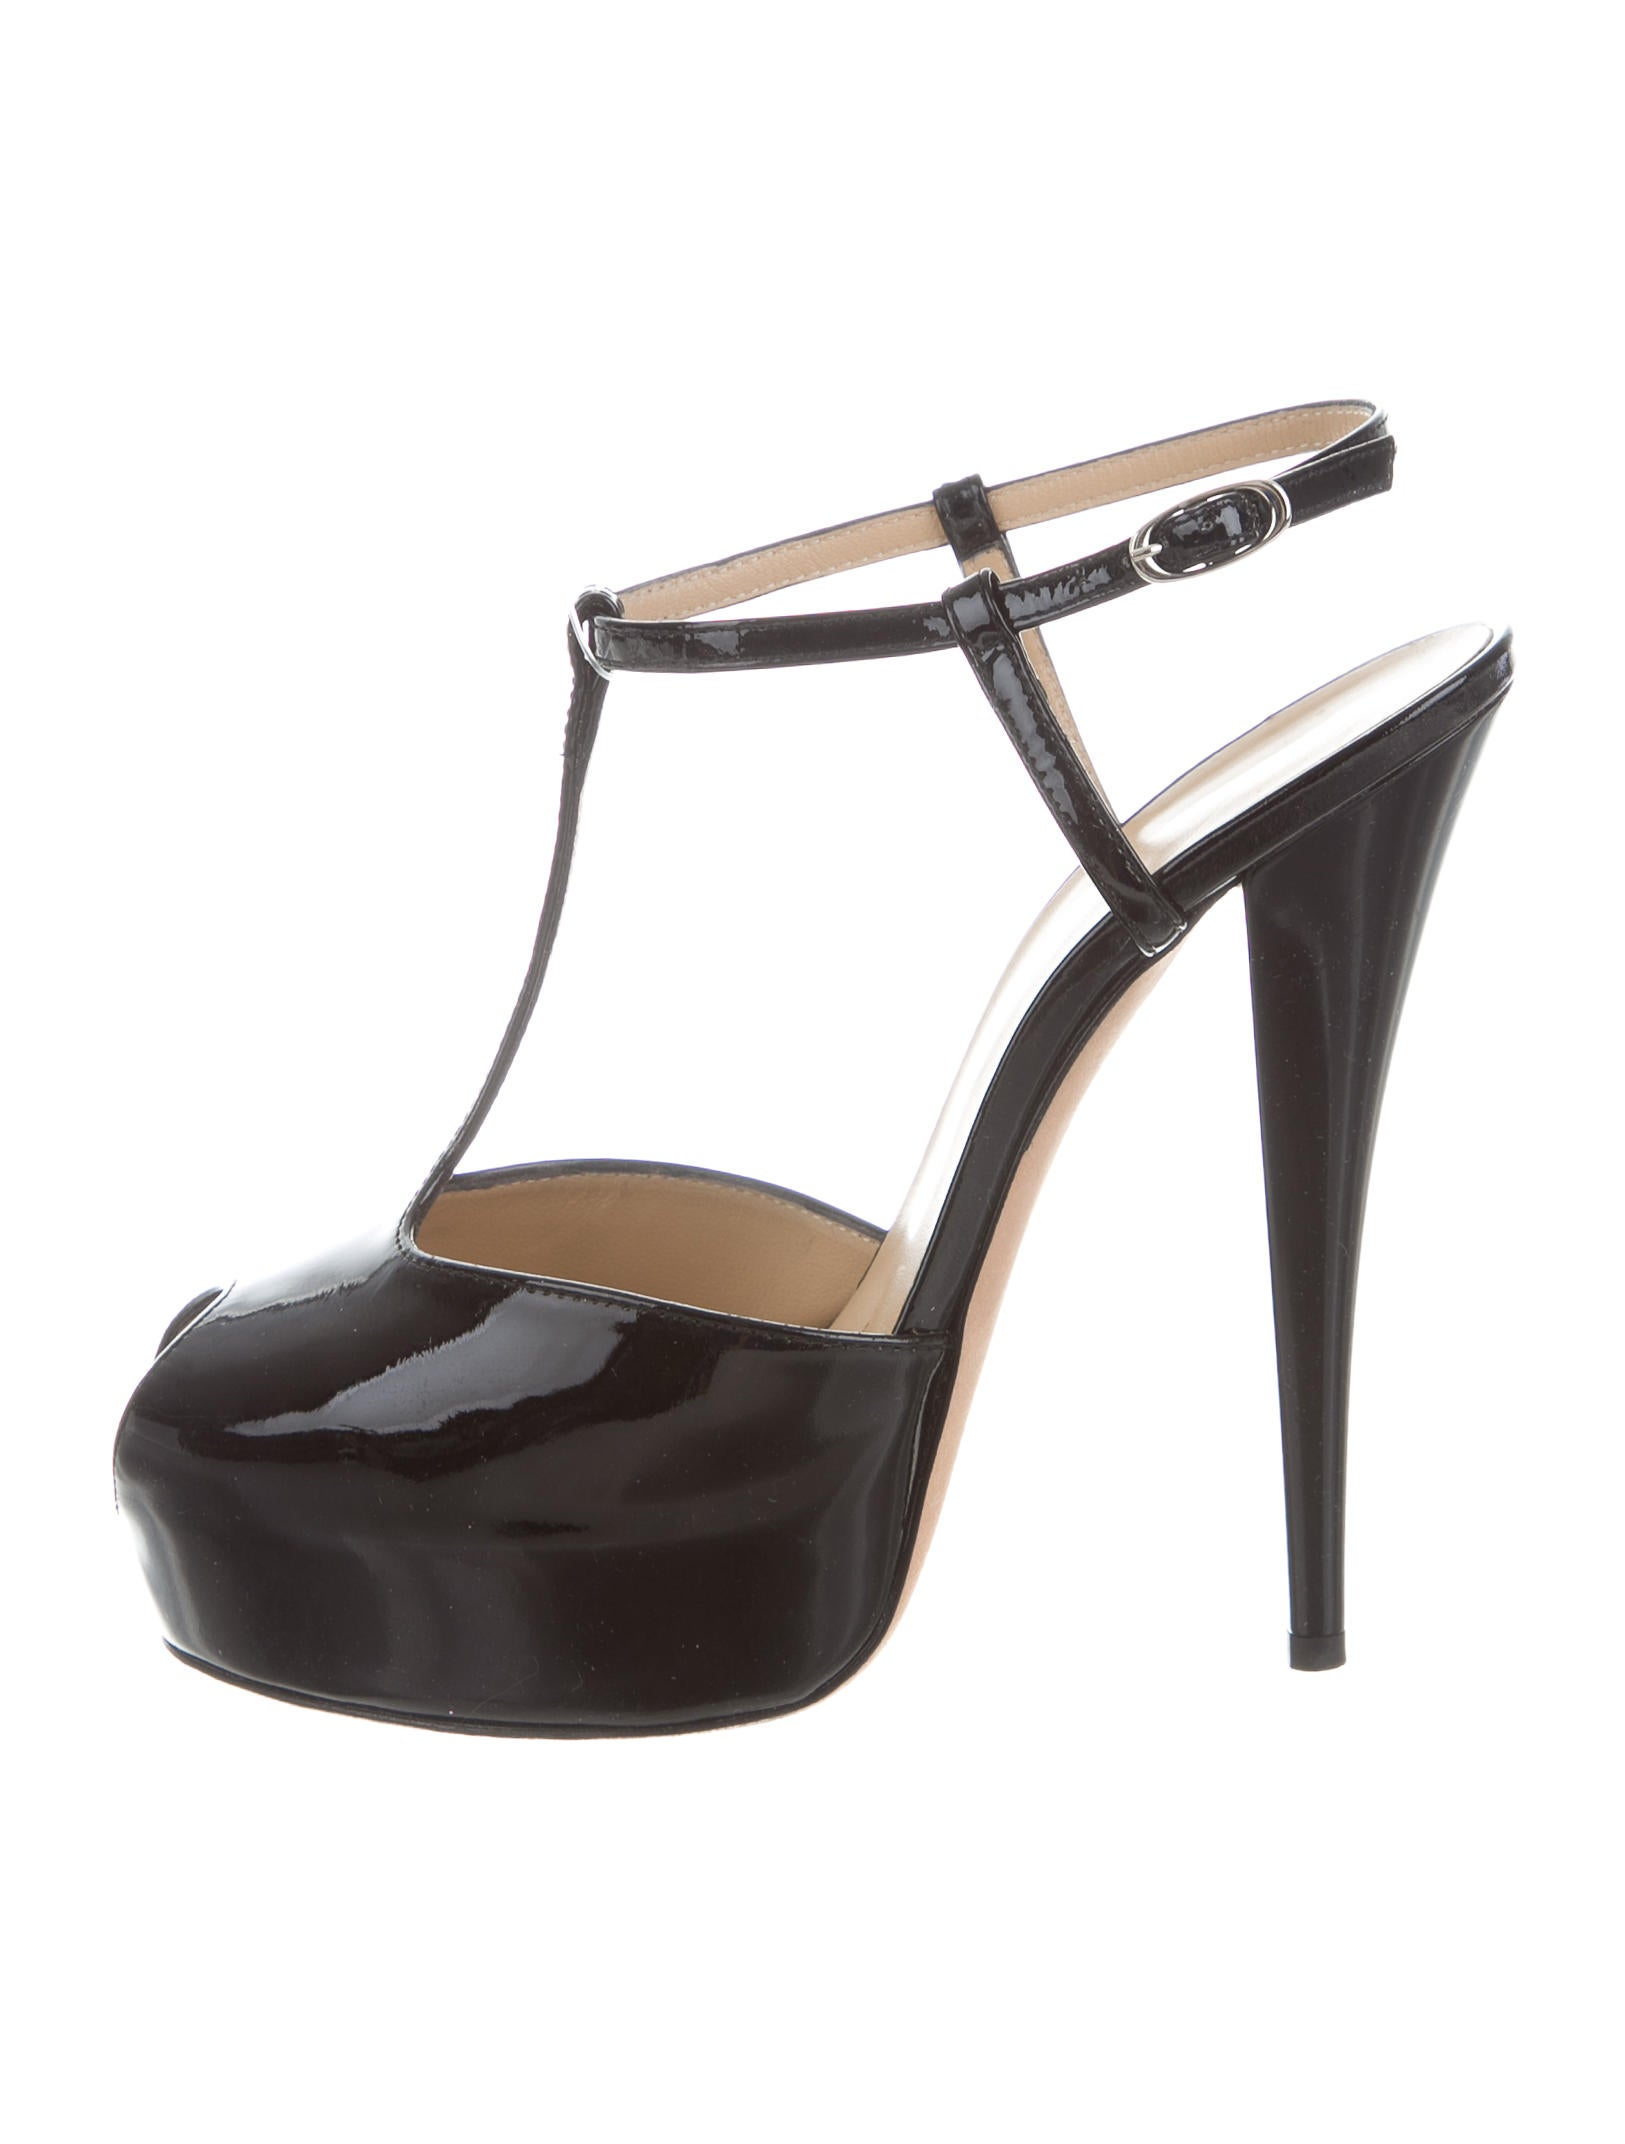 Find t strap platform at ShopStyle. Shop the latest collection of t strap platform from the most popular stores - all in one place.